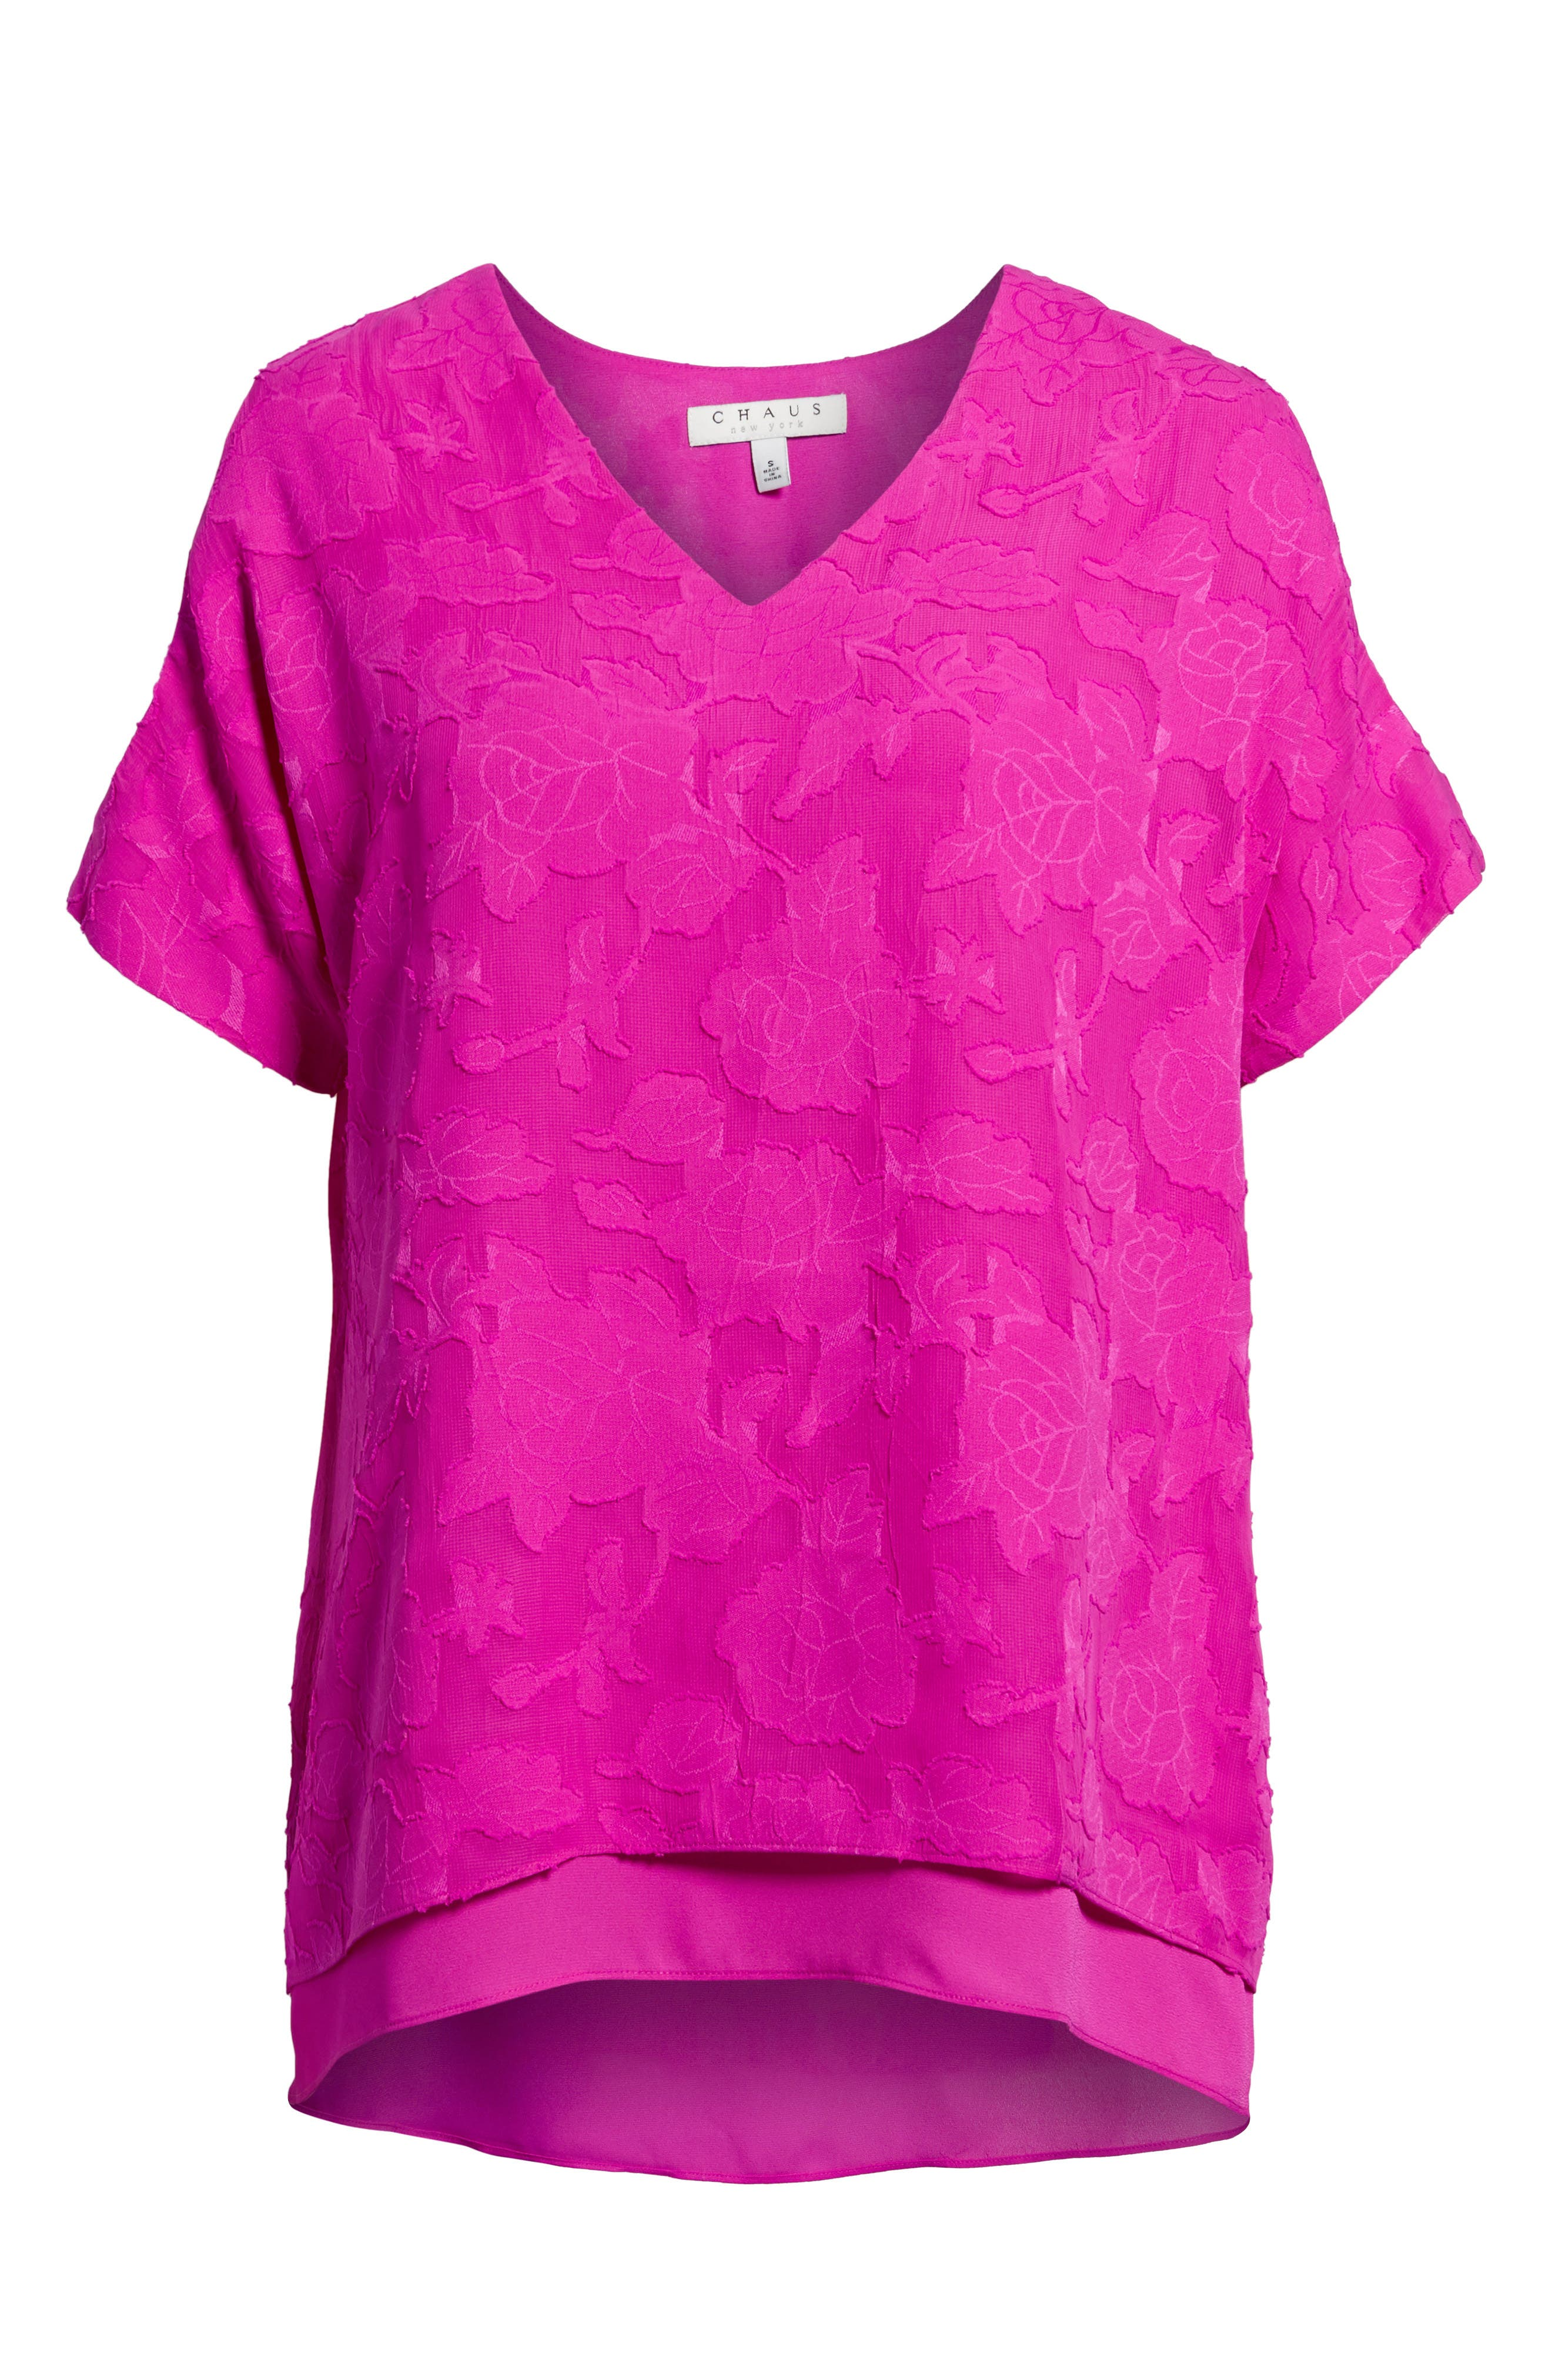 Floral Jacquard Cold Shoulder Top,                             Alternate thumbnail 6, color,                             686-Pink Nouveau